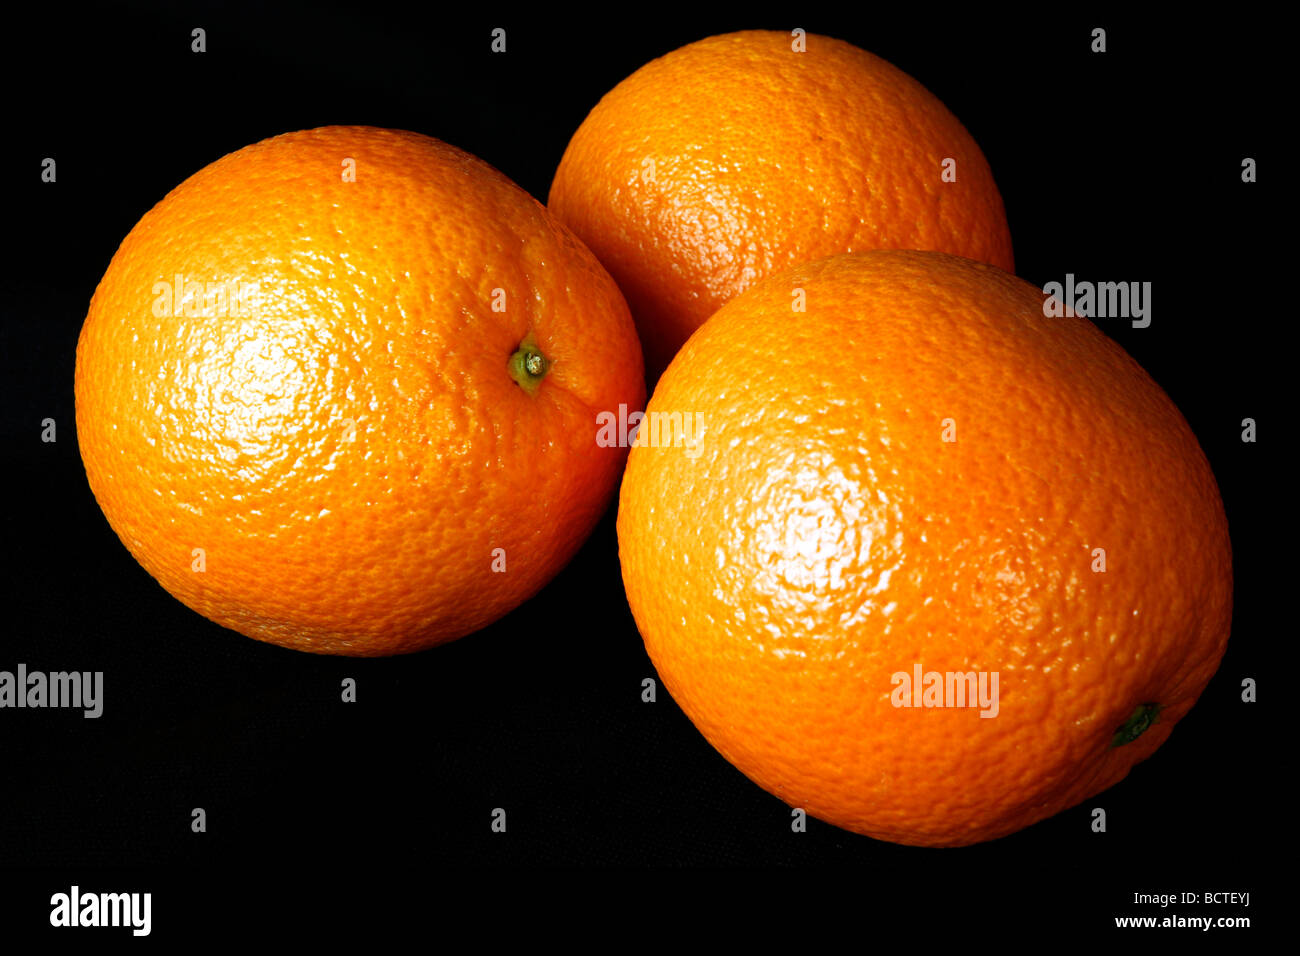 Three oranges placed against a black background - Stock Image